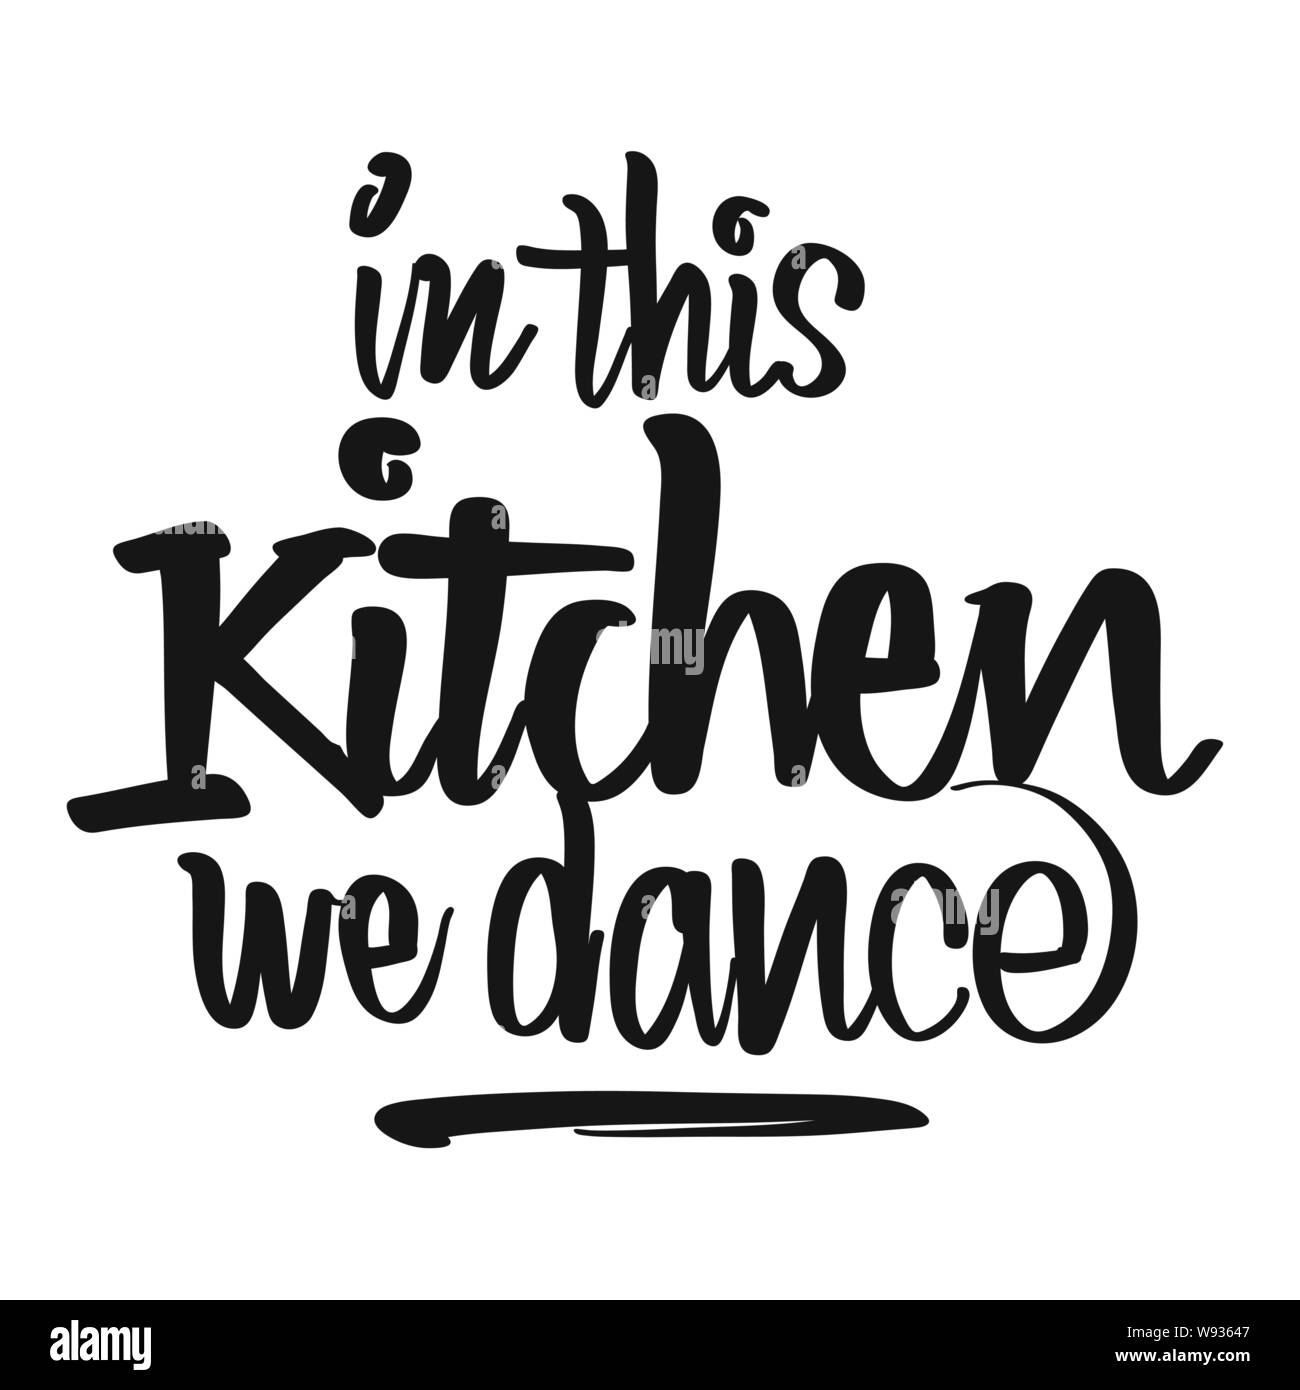 graphic regarding Kitchen Printable titled Inside This Kitchen area We Dance handwritten lettering. Printable